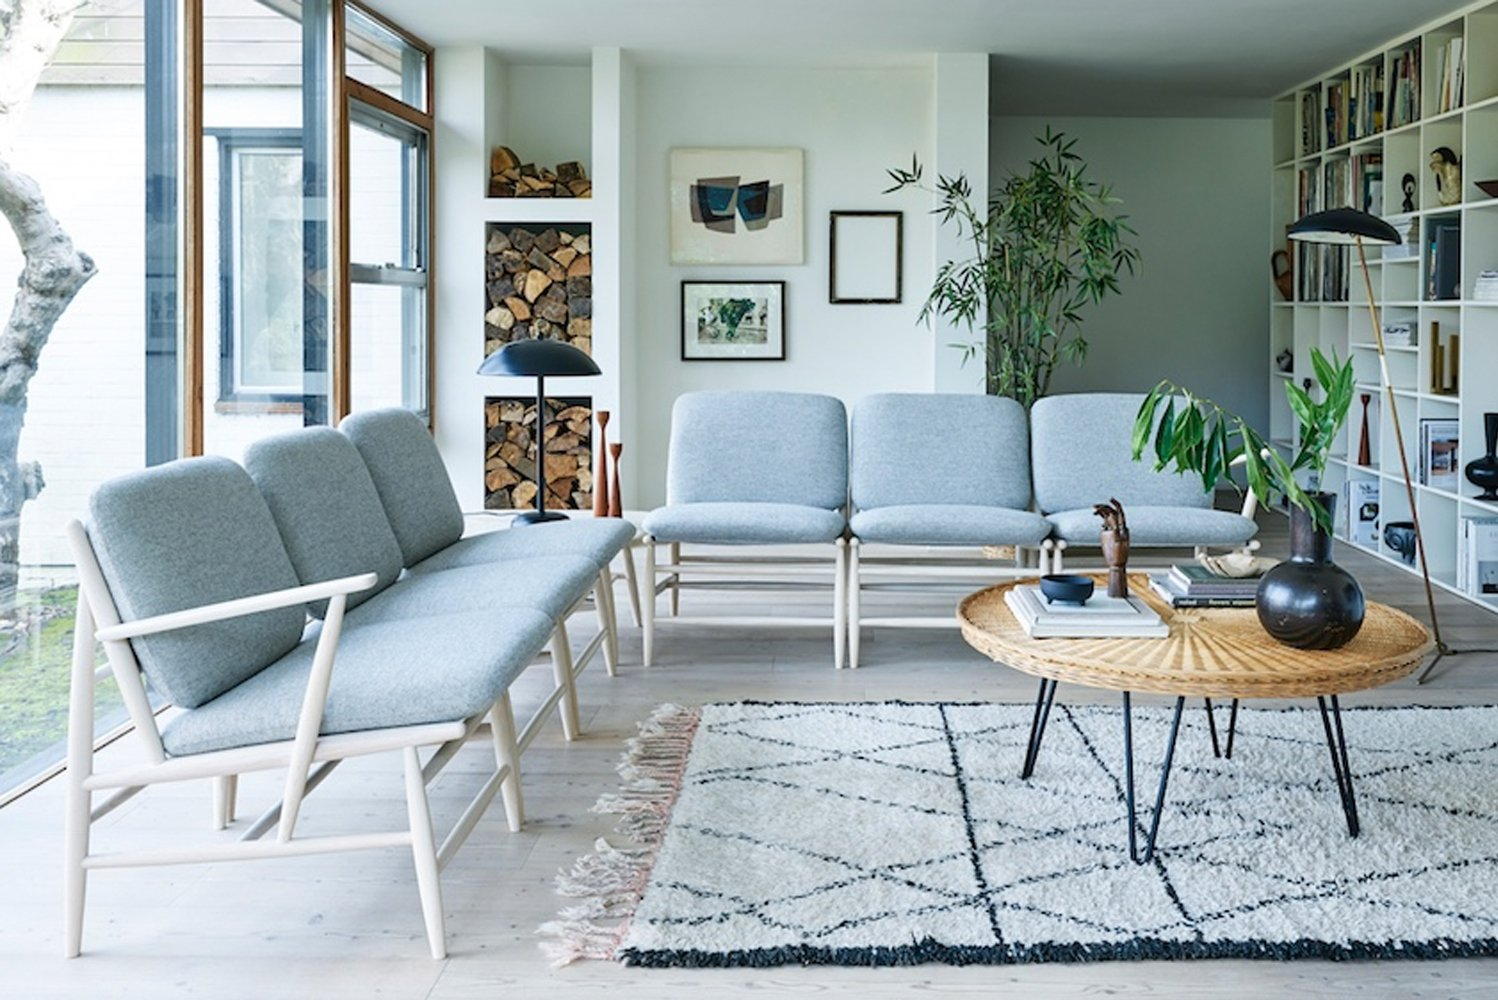 Introducing VON, the first collection by British brand Ercol.